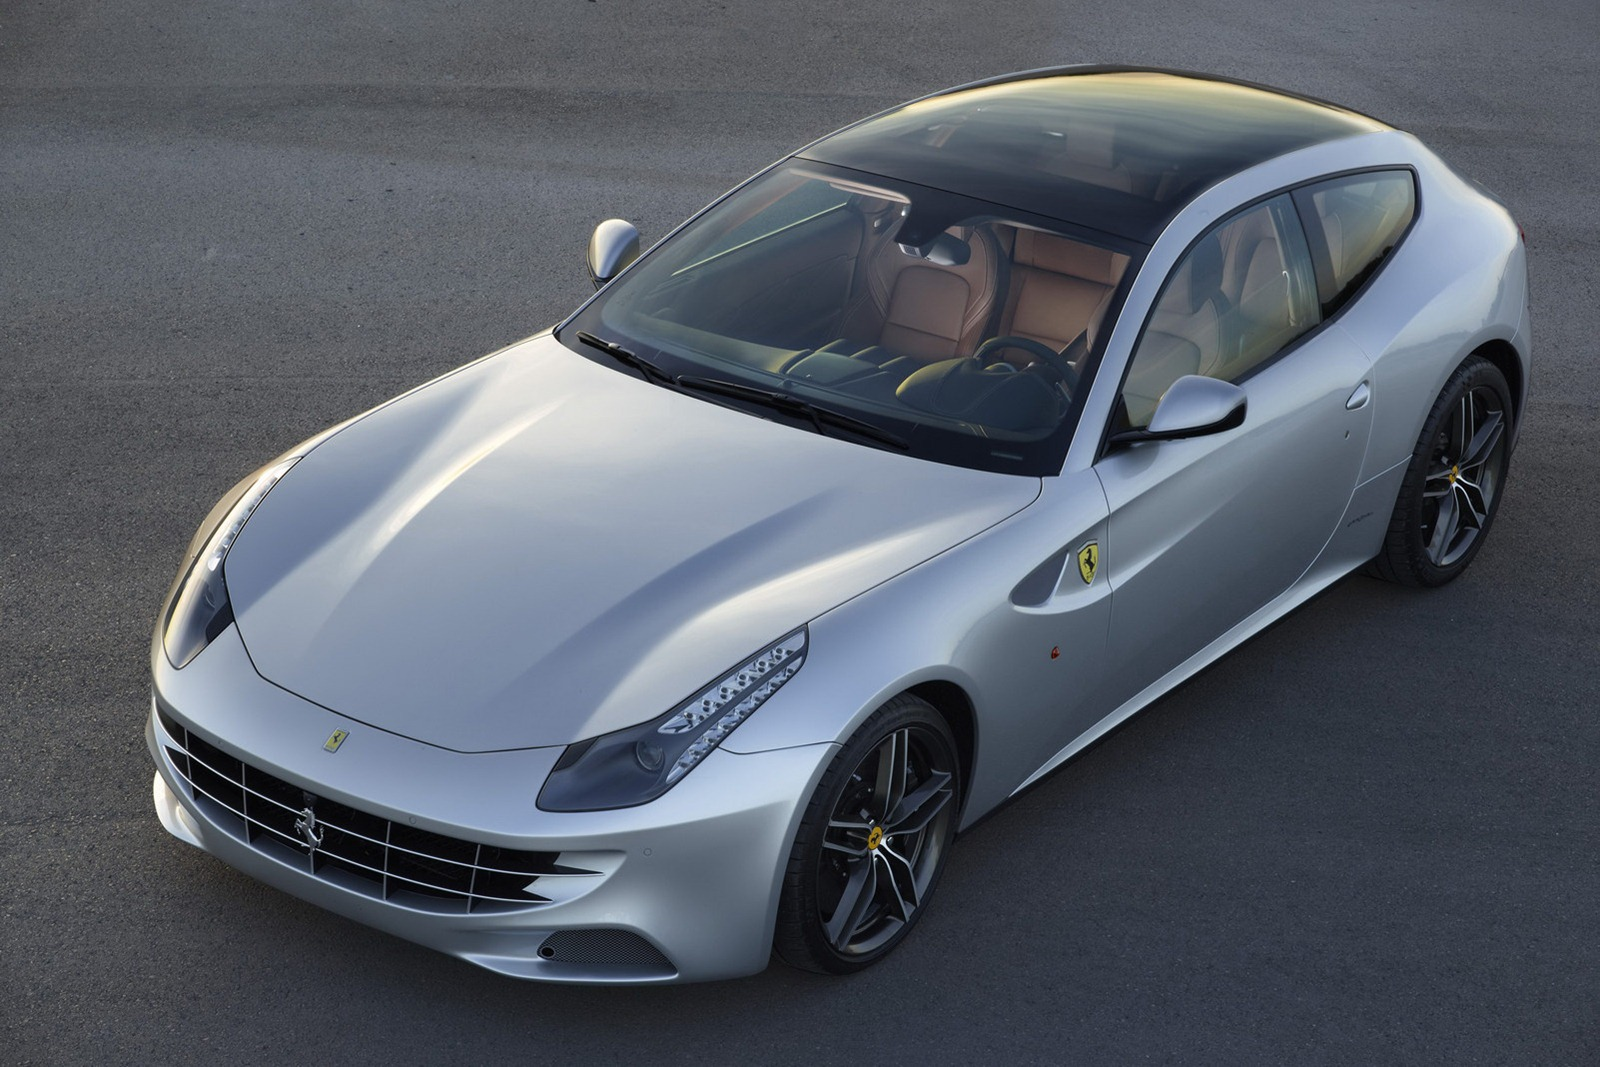 Ferrari FF Gets Full-Length Panoramic Roof in Paris ...